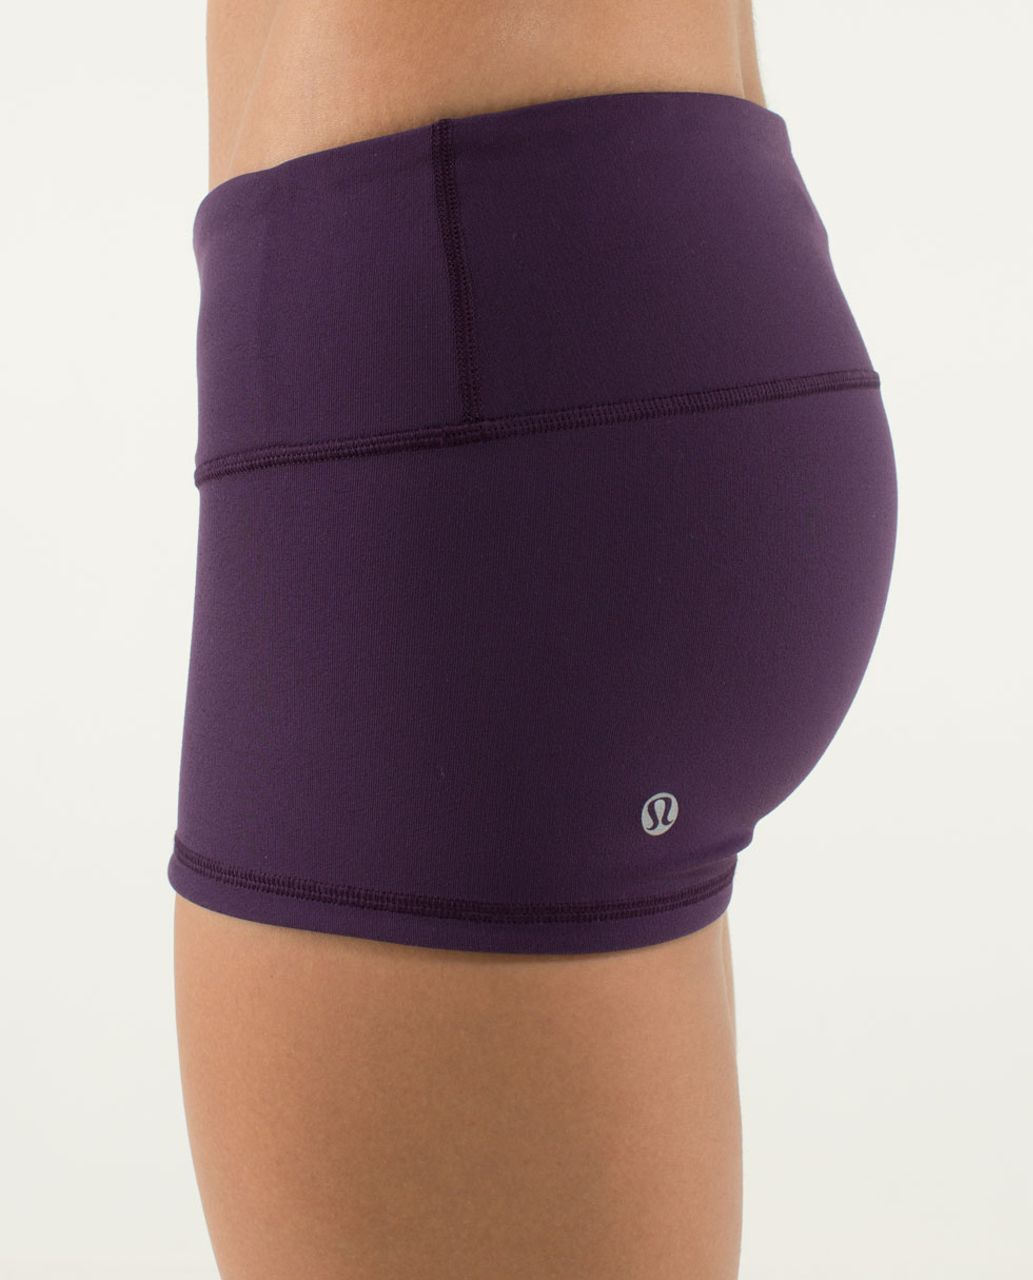 Lululemon Boogie Short - Deep Zinfandel / Black